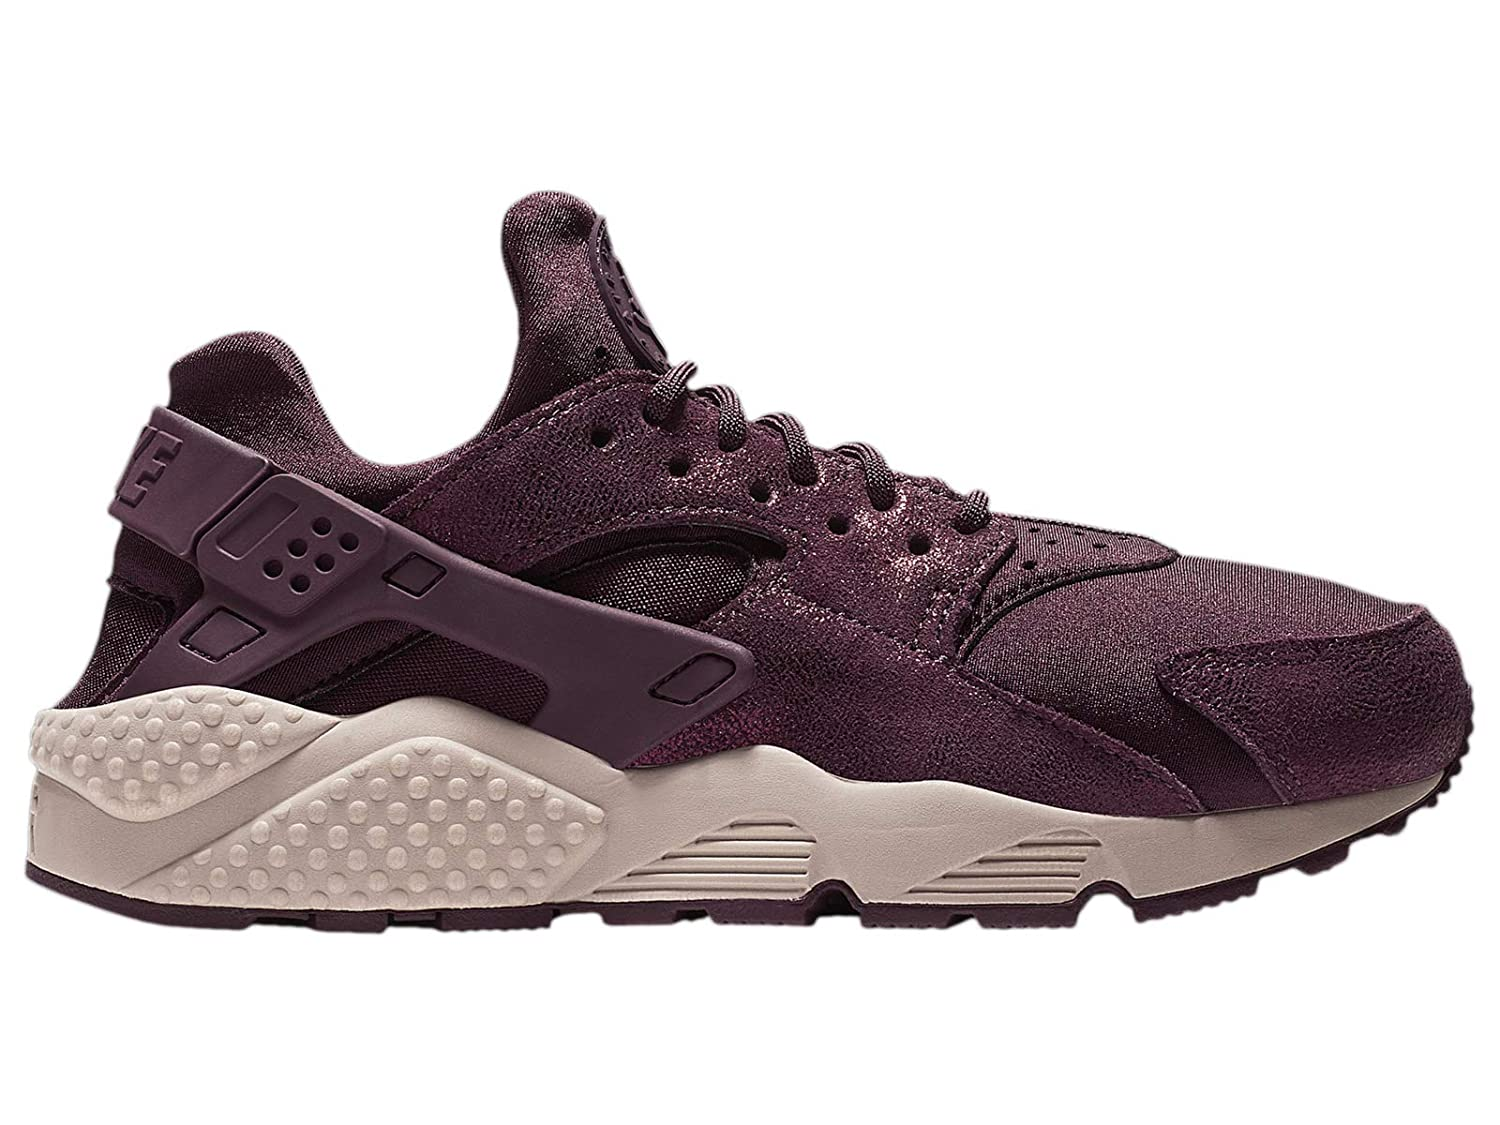 3f905e9c4d58 Nike Women s Air Huarache Run Low-Top Sneakers